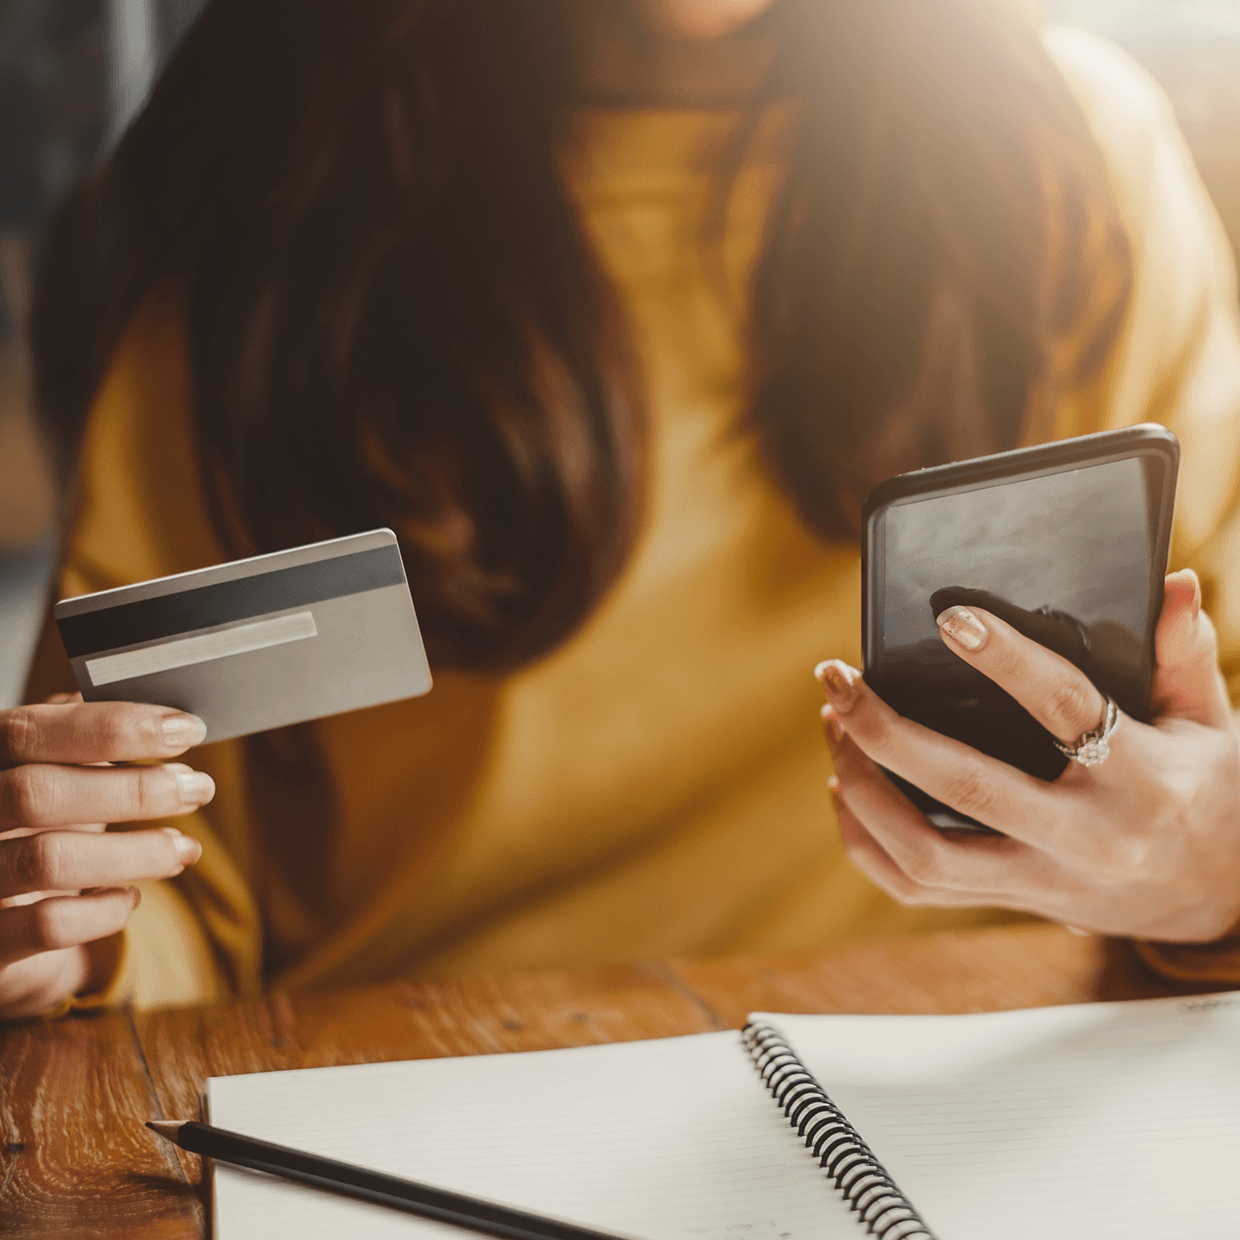 Woman using her phone as a credit card.